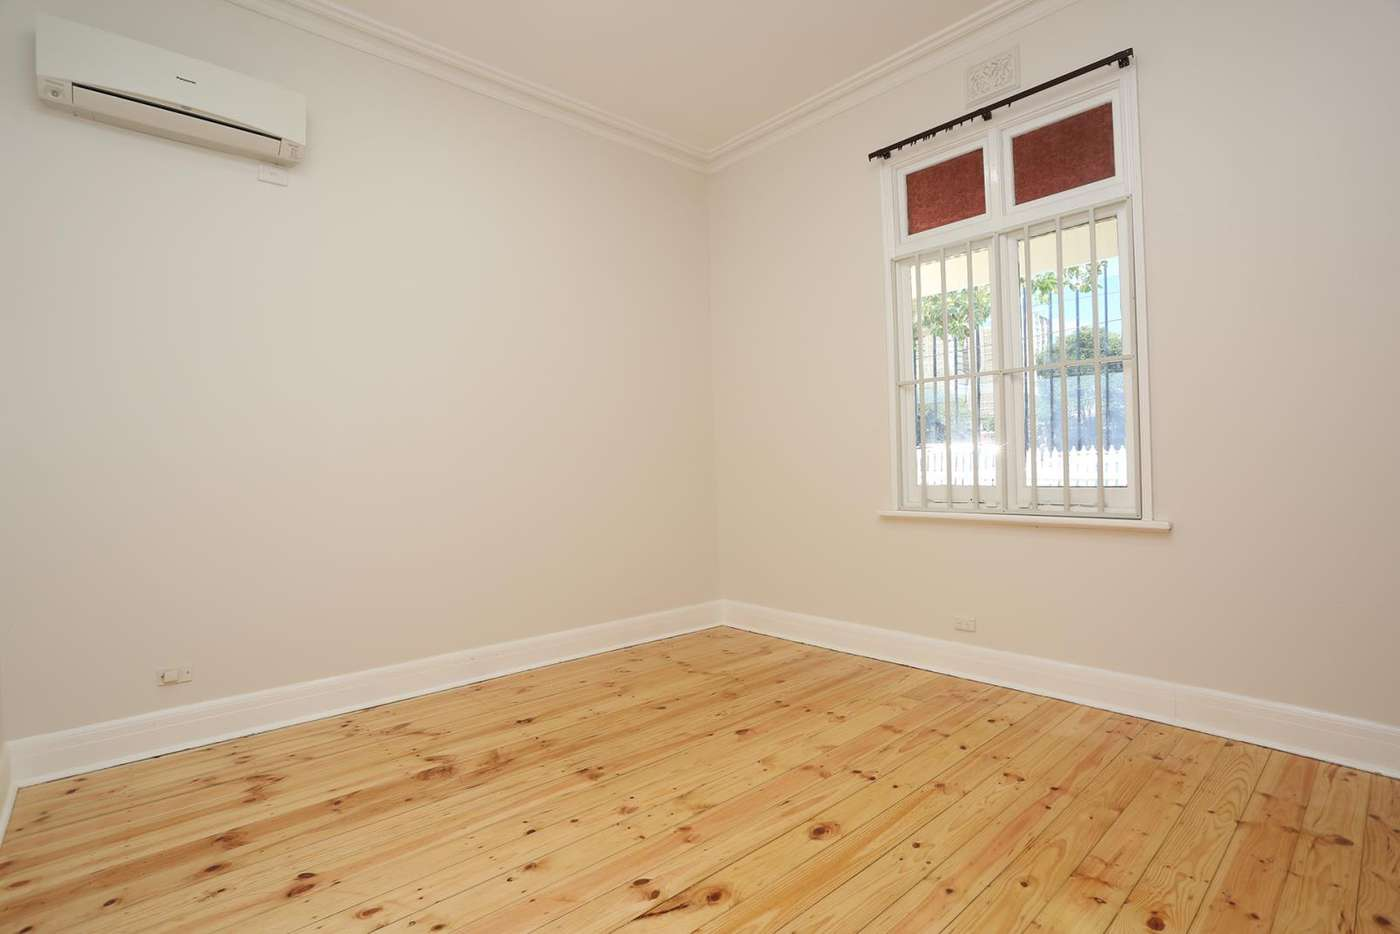 Sixth view of Homely house listing, 13 Shelley Street, Richmond VIC 3121